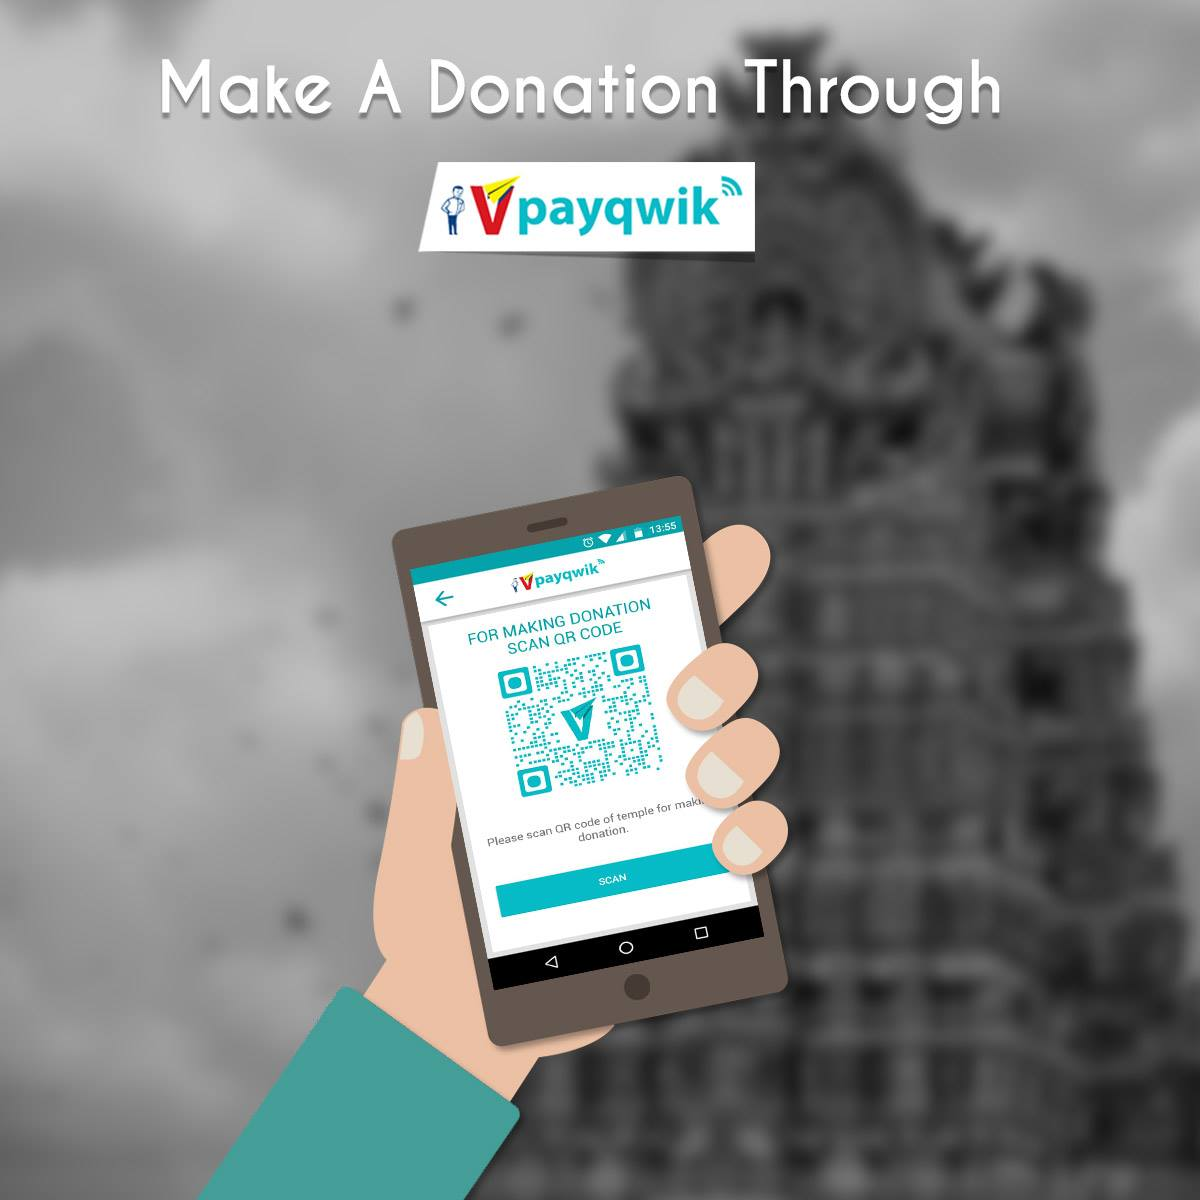 Scan the Temple QR Code and donate. #DigitalWallet #Temple #QRCode<br>http://pic.twitter.com/sTBcZWm2k4